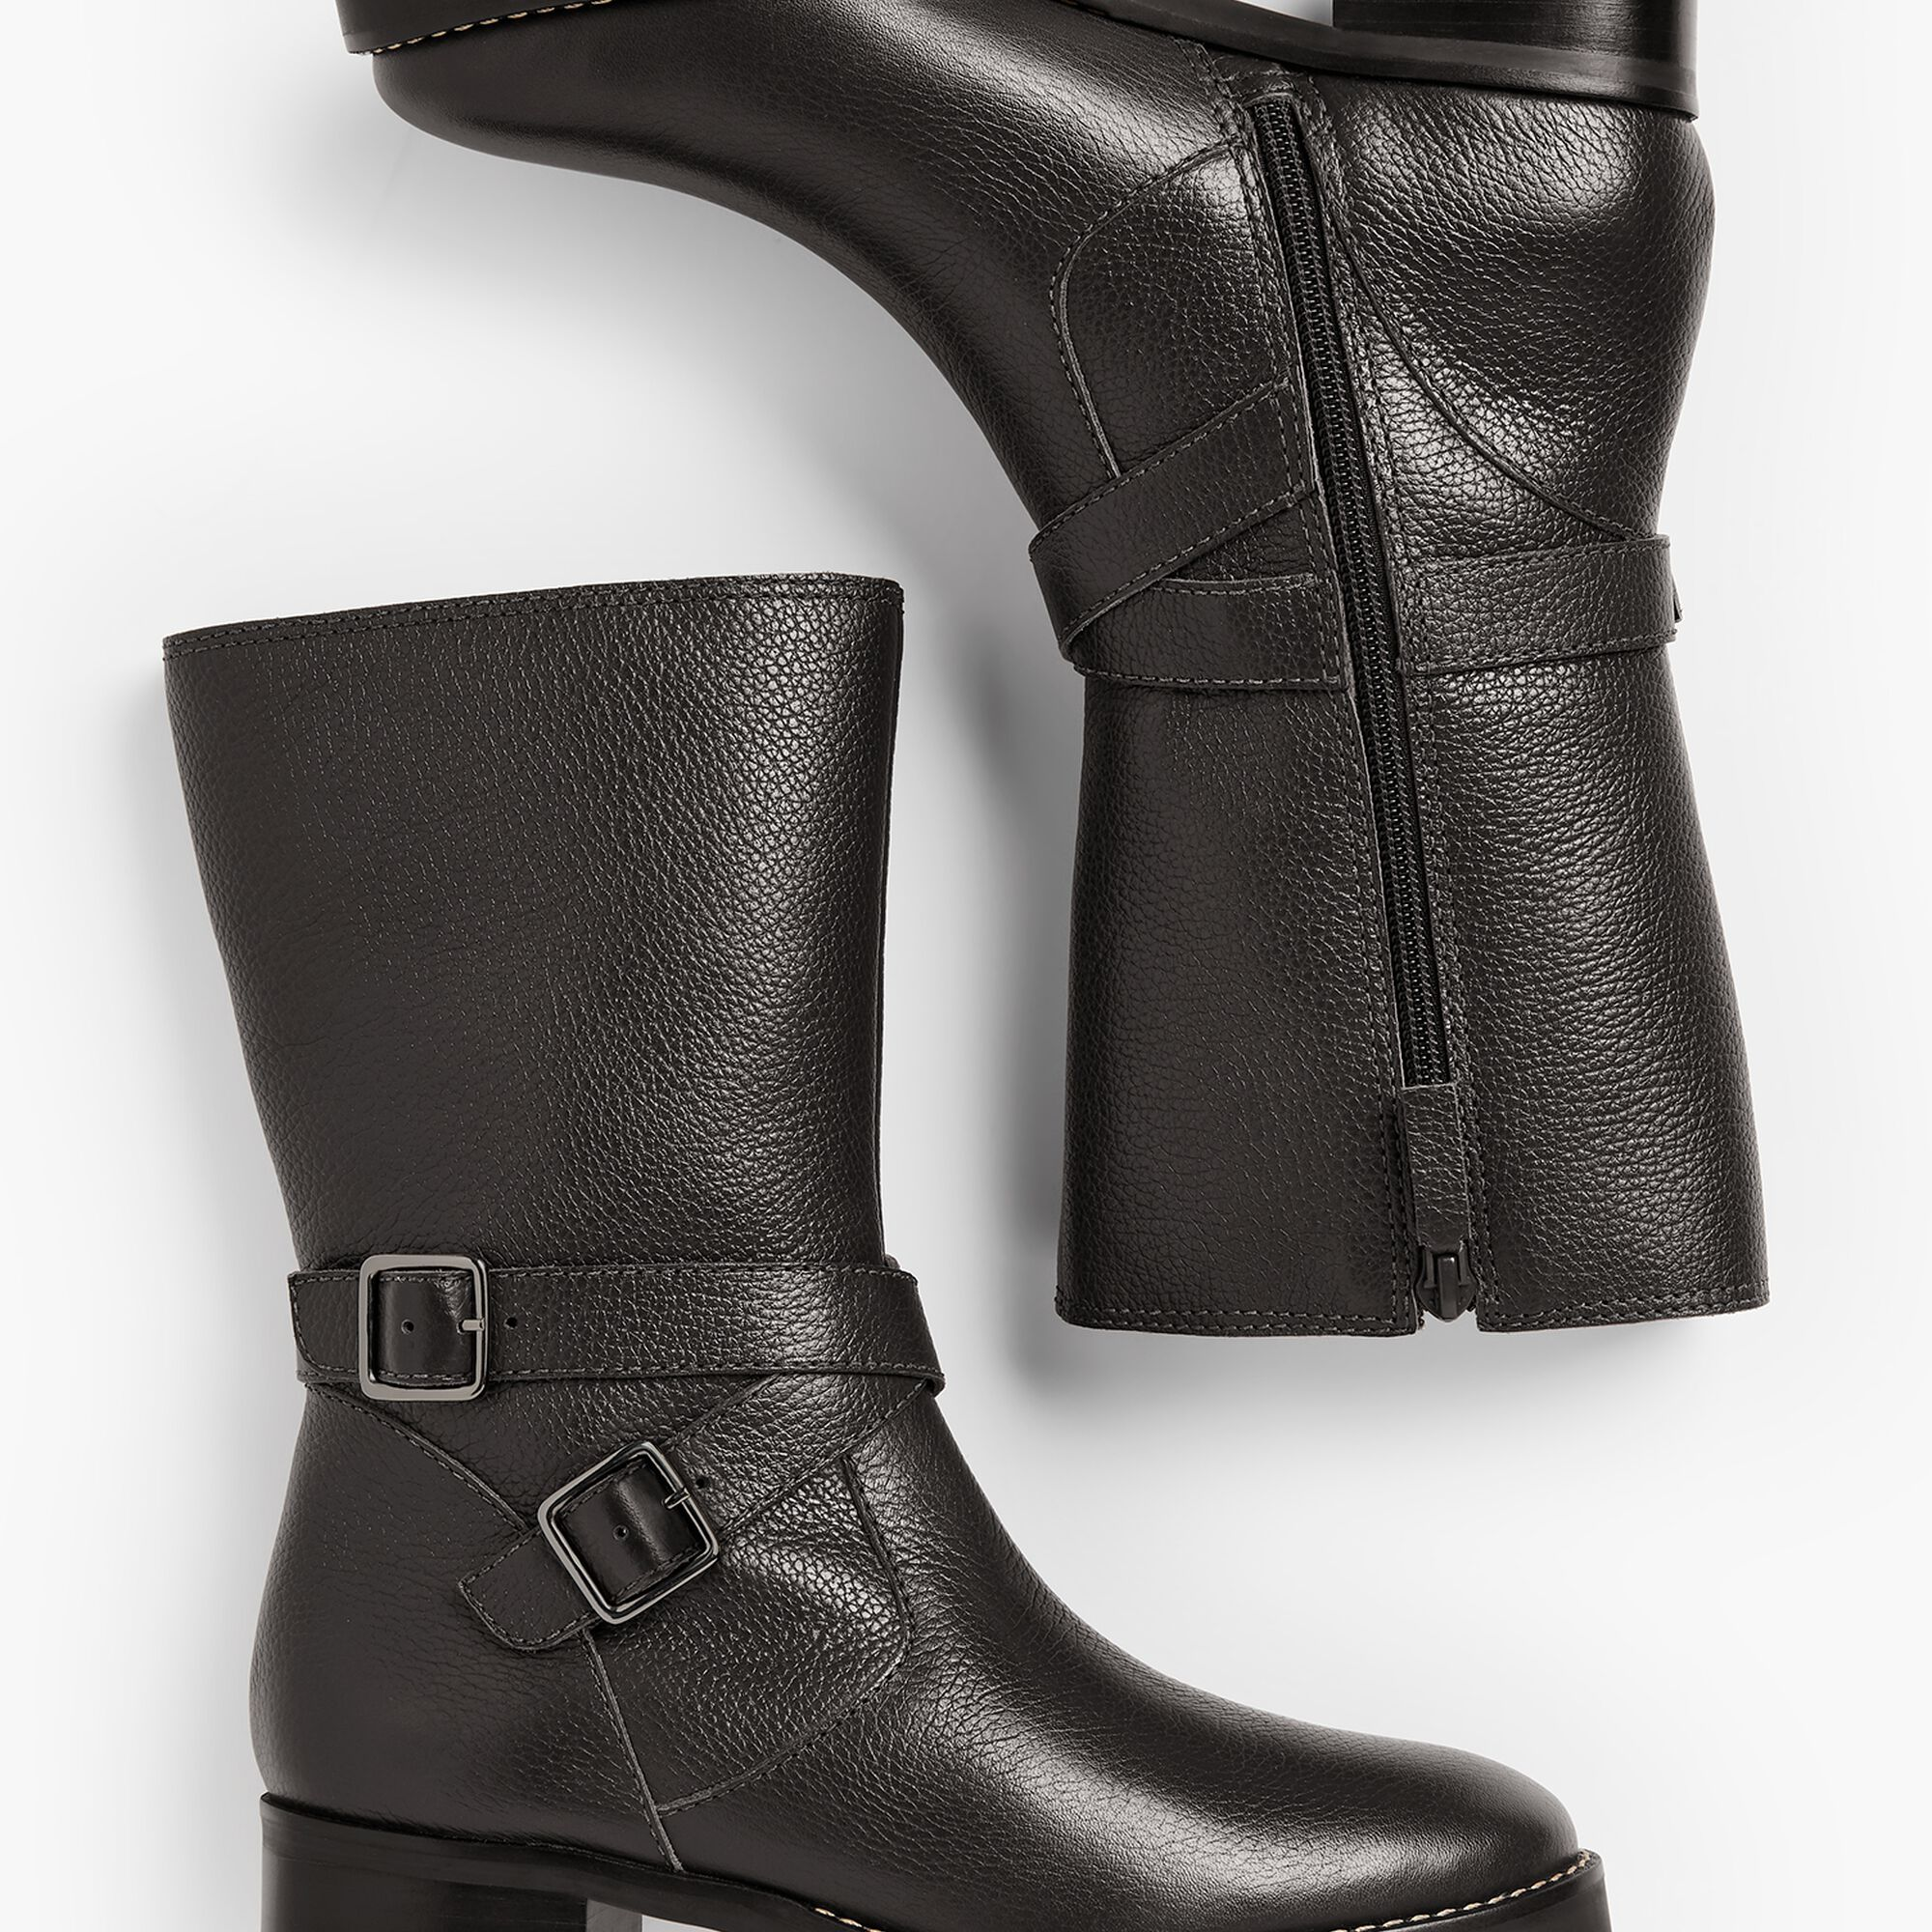 9ec3f99bc61 Tish Double-Strap Leather Boots